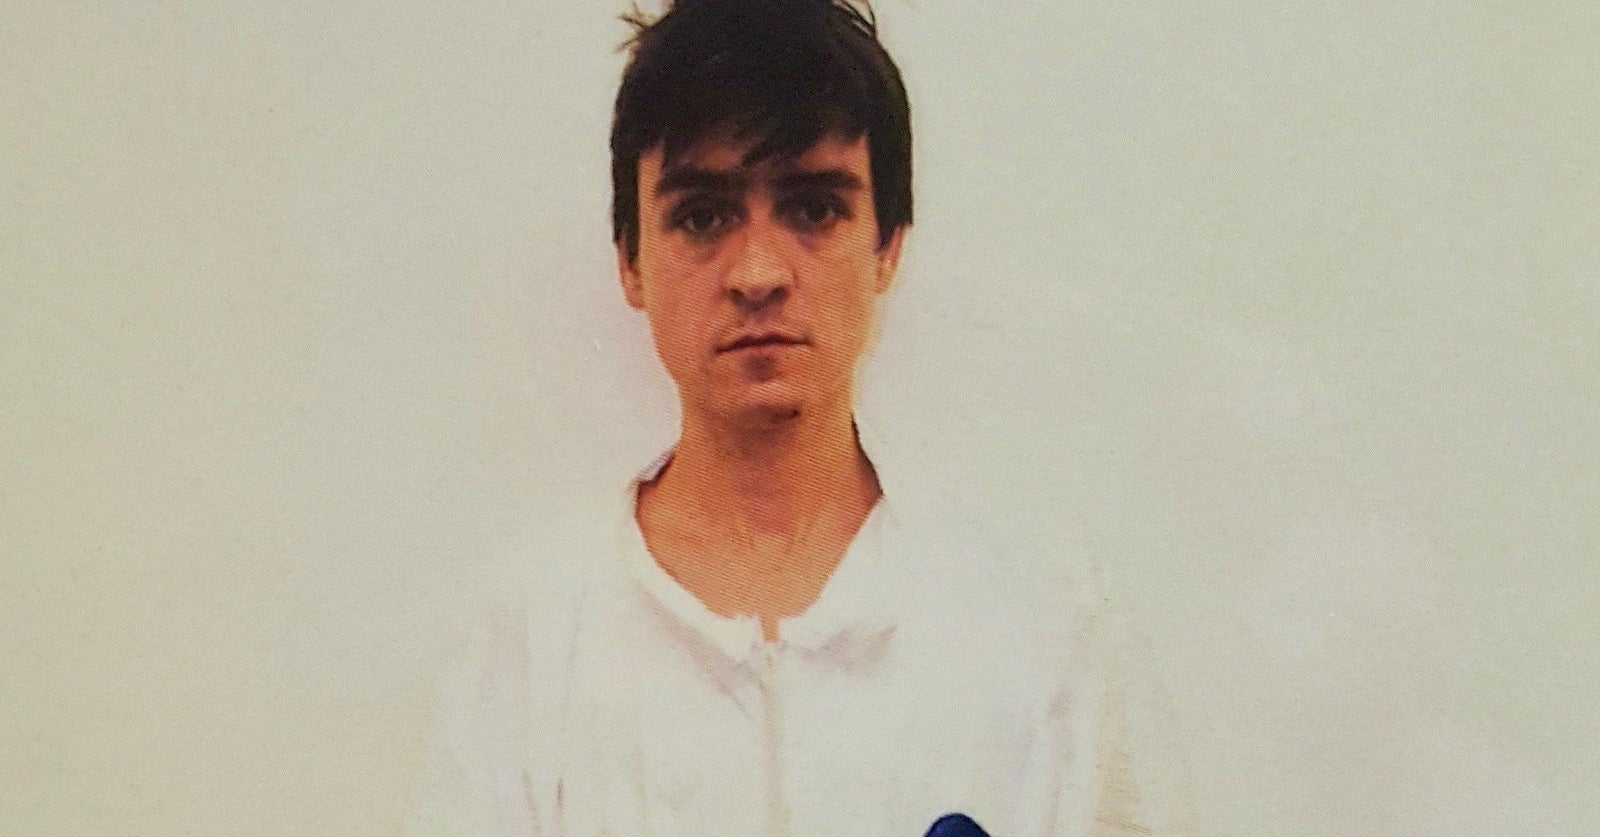 Alexandre Bissonnette Wikipedia: The Quebec Mosque Shooter Informed Police He Wanted To